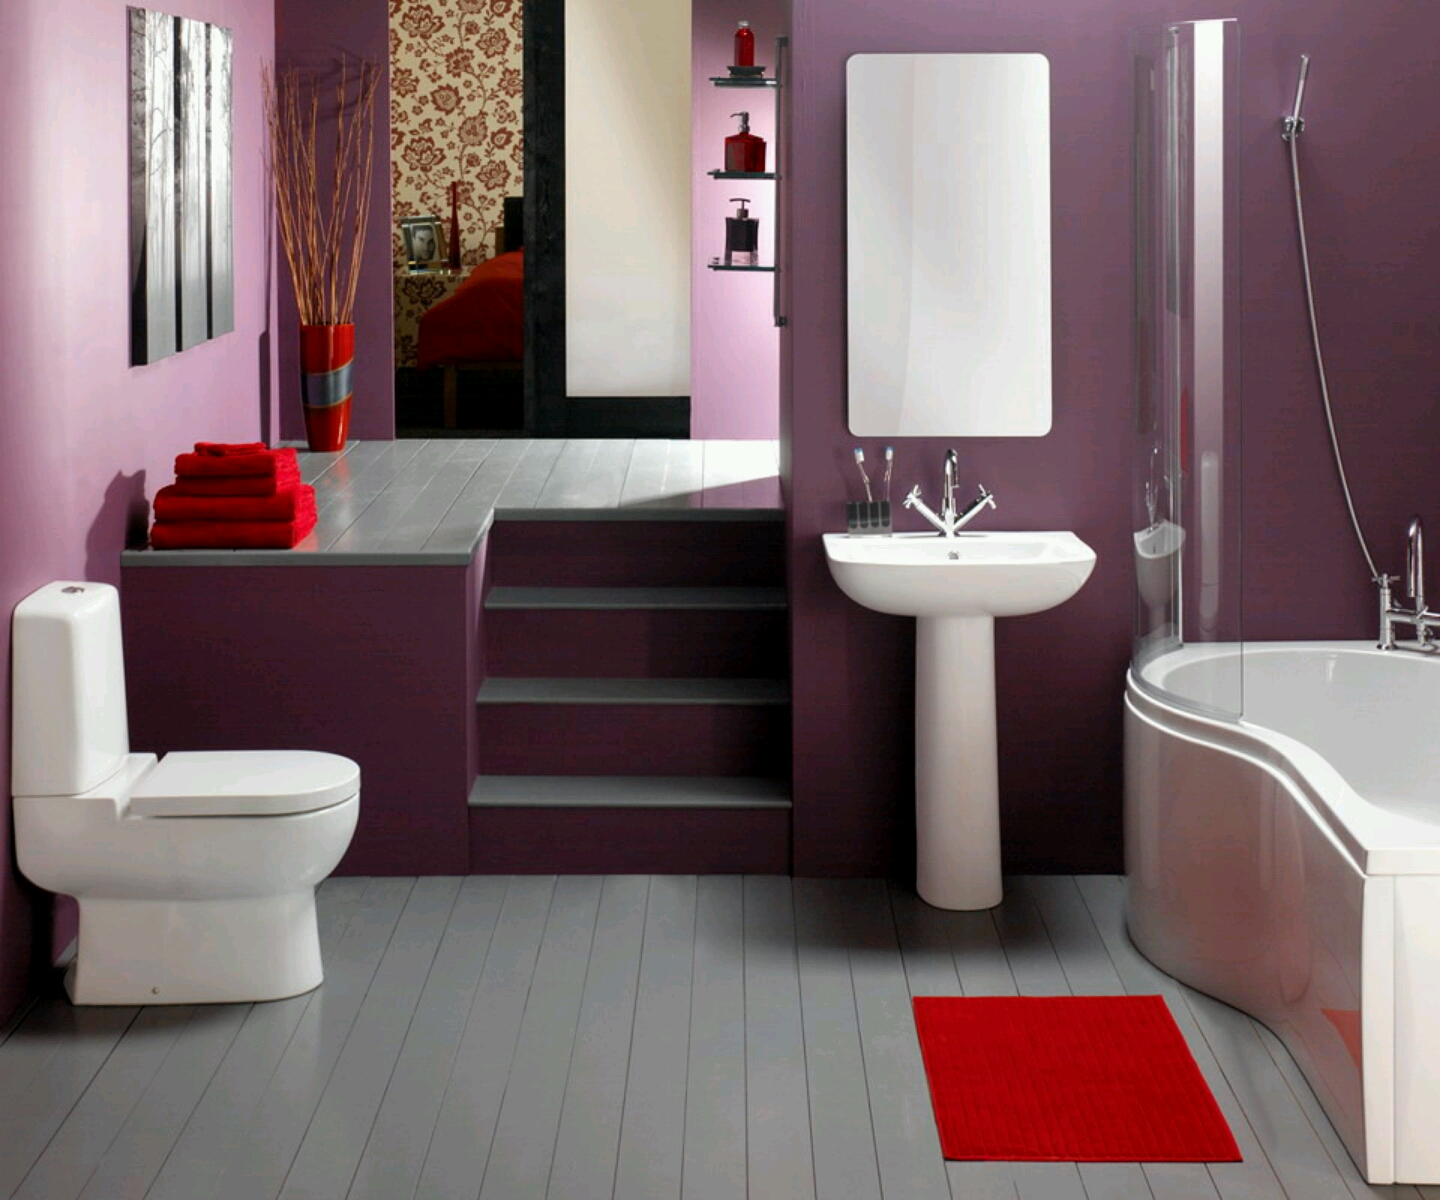 New home designs latest luxury modern bathrooms designs for Bathroom design simple